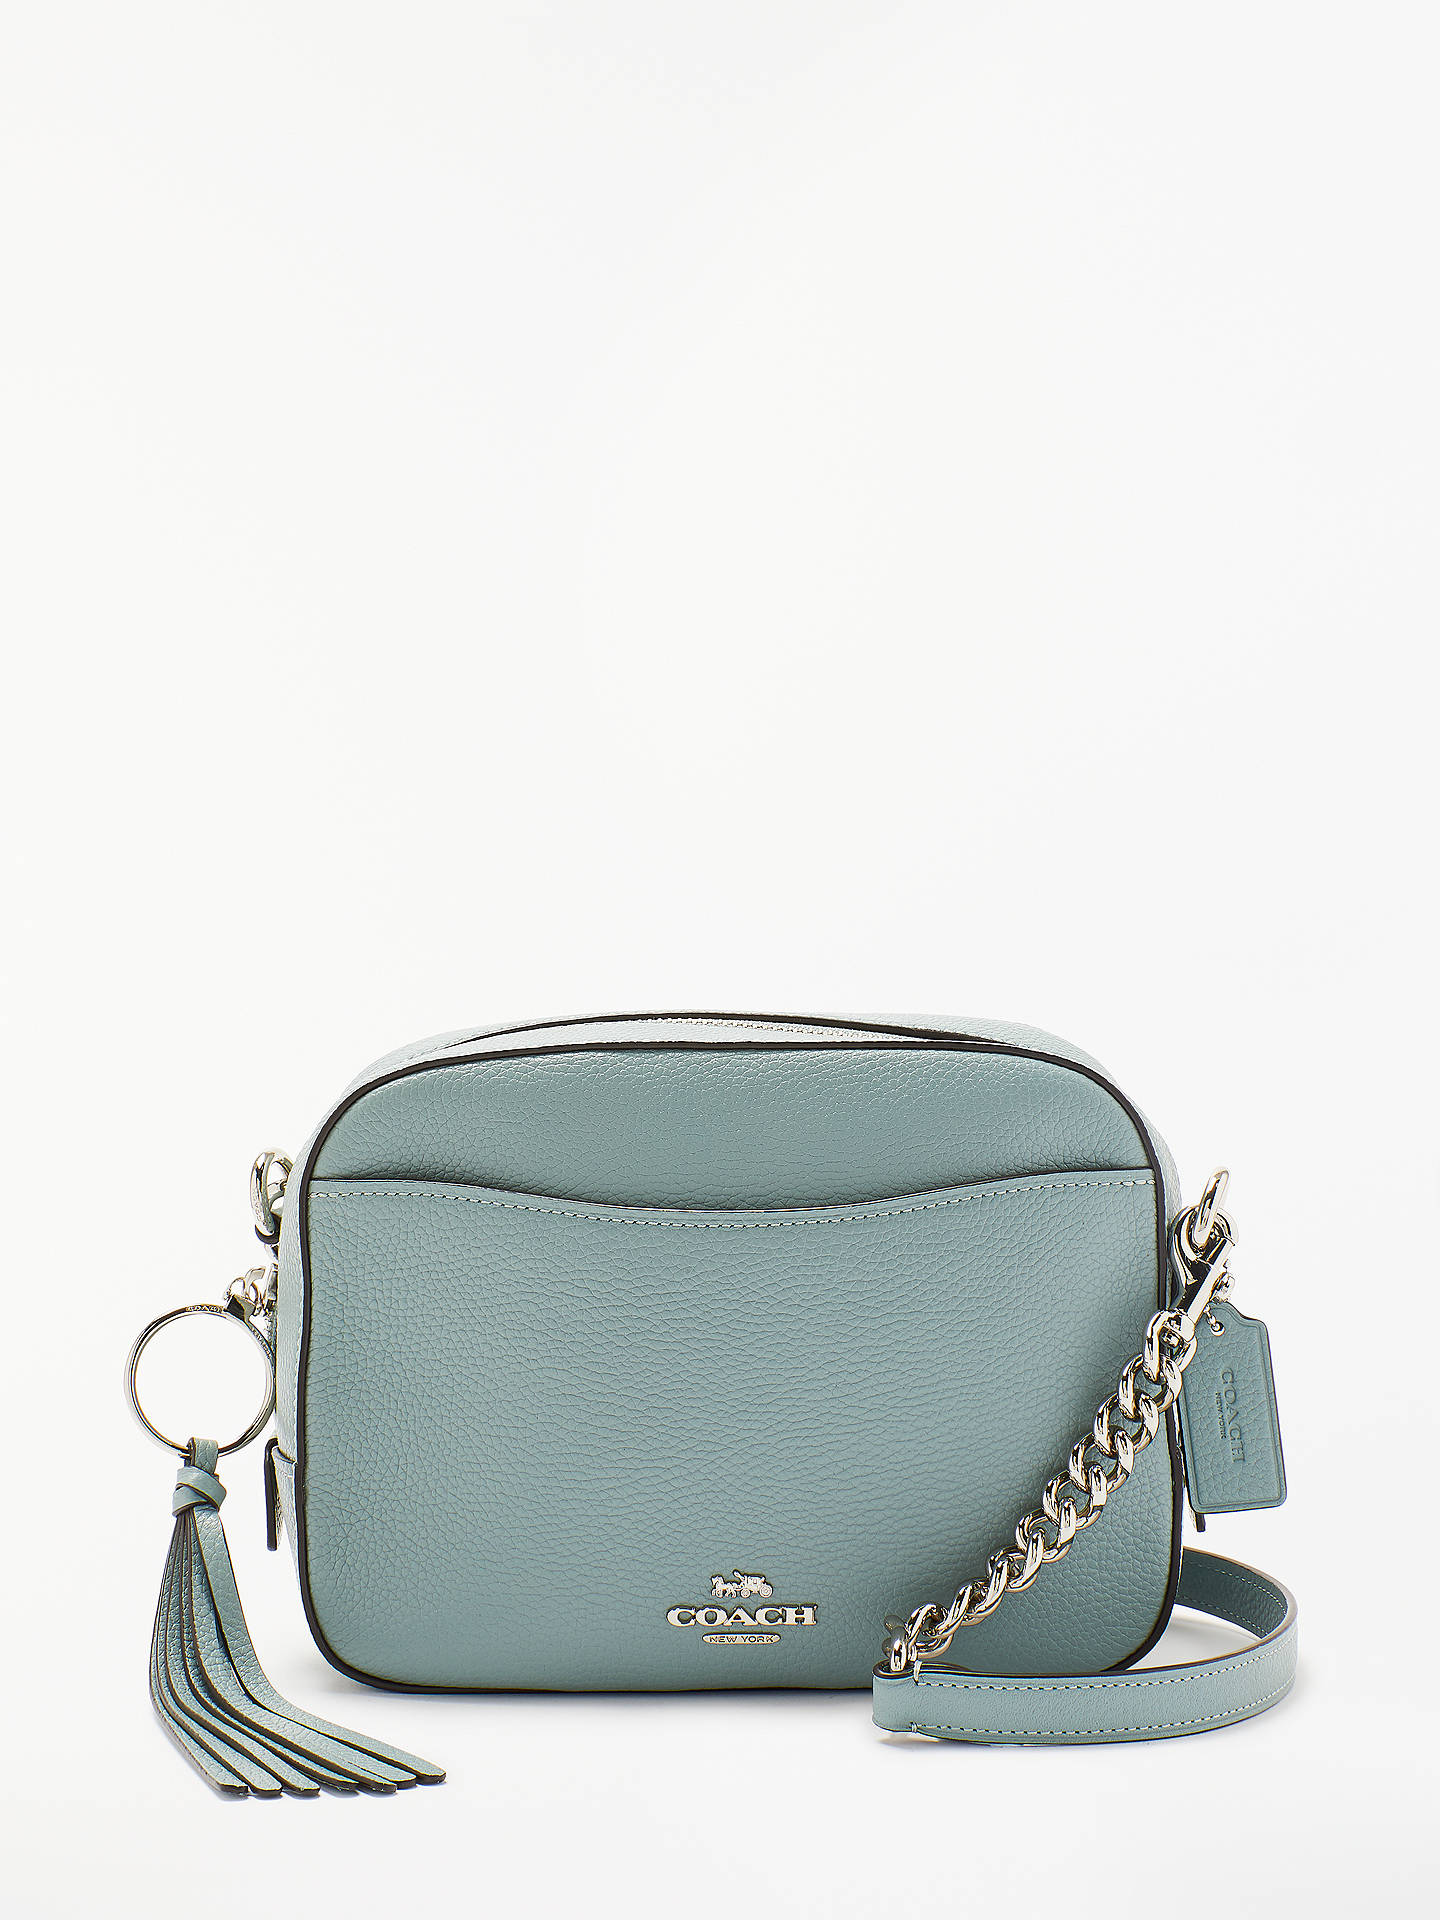 6a532319588 Buy Coach Leather Cross Body Camera Bag, Sage Online at johnlewis.com ...